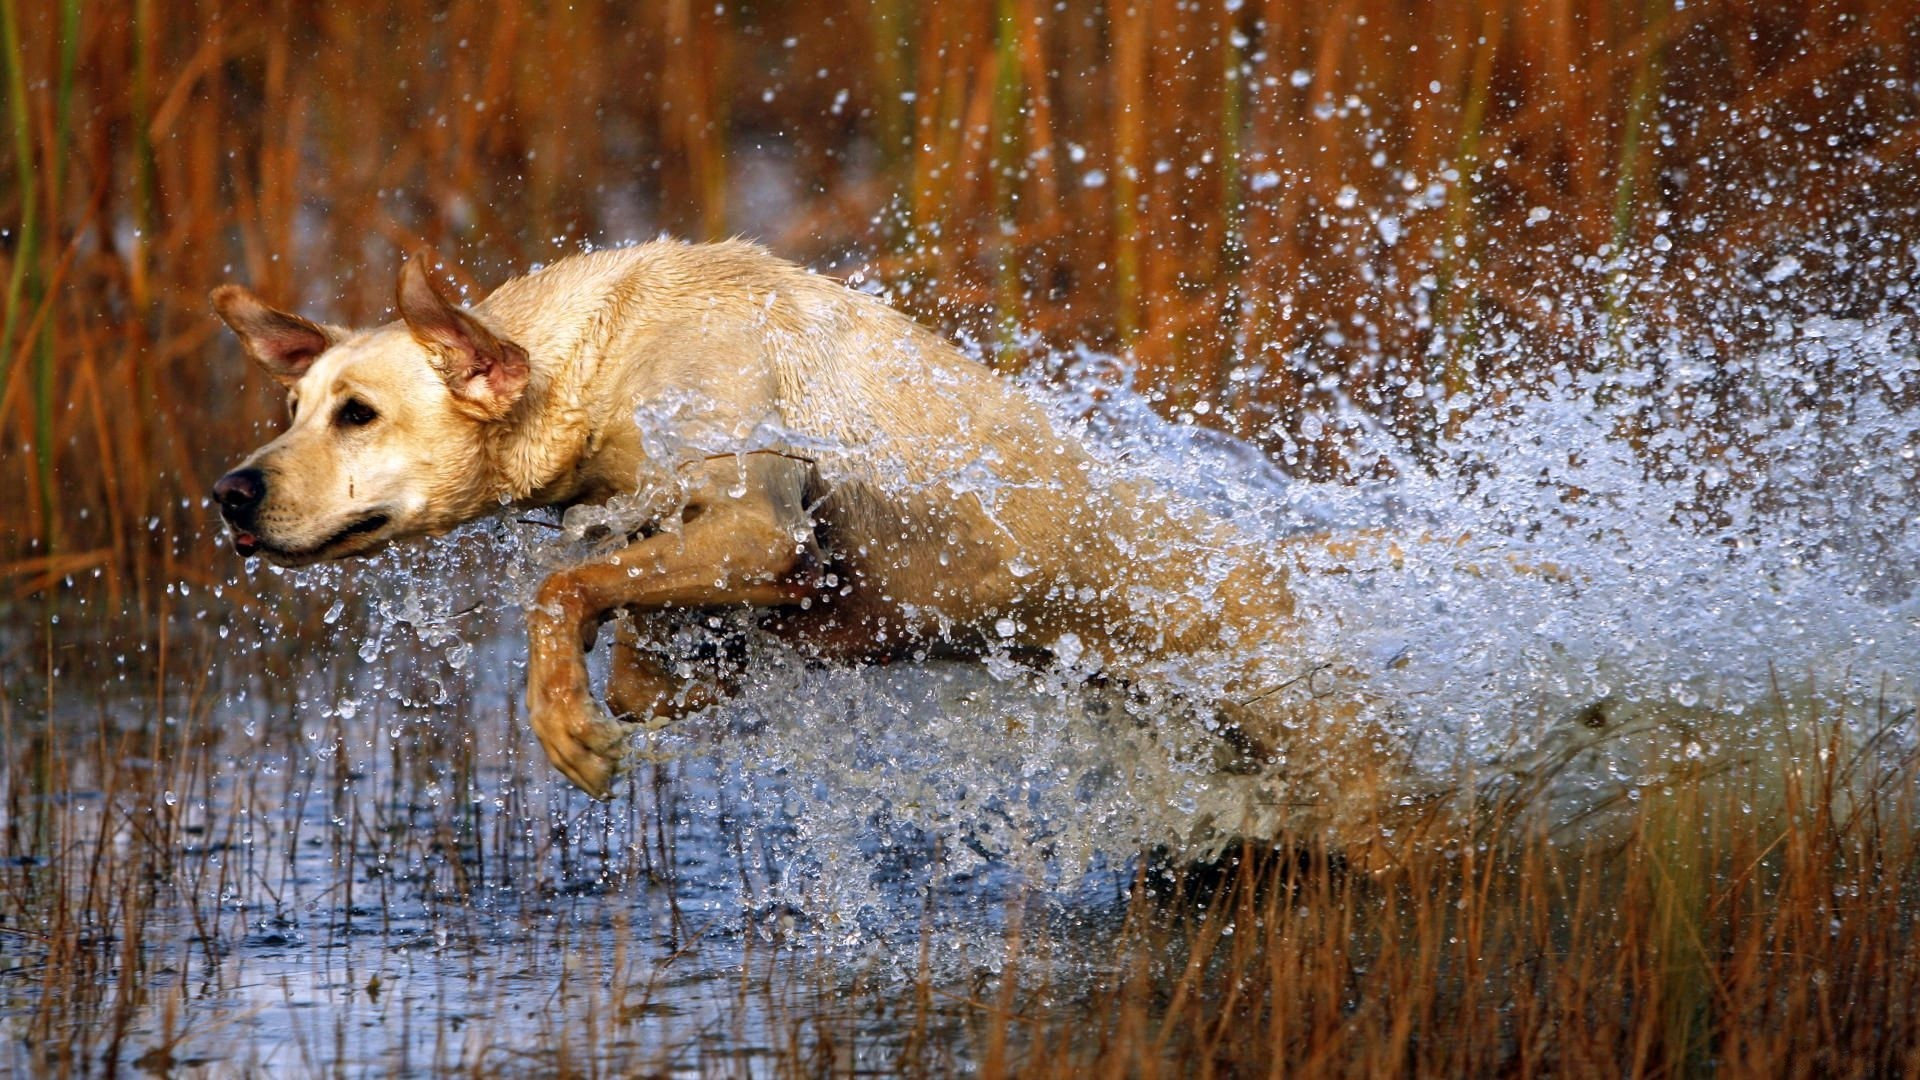 mobile hunting dog pictures - high quality